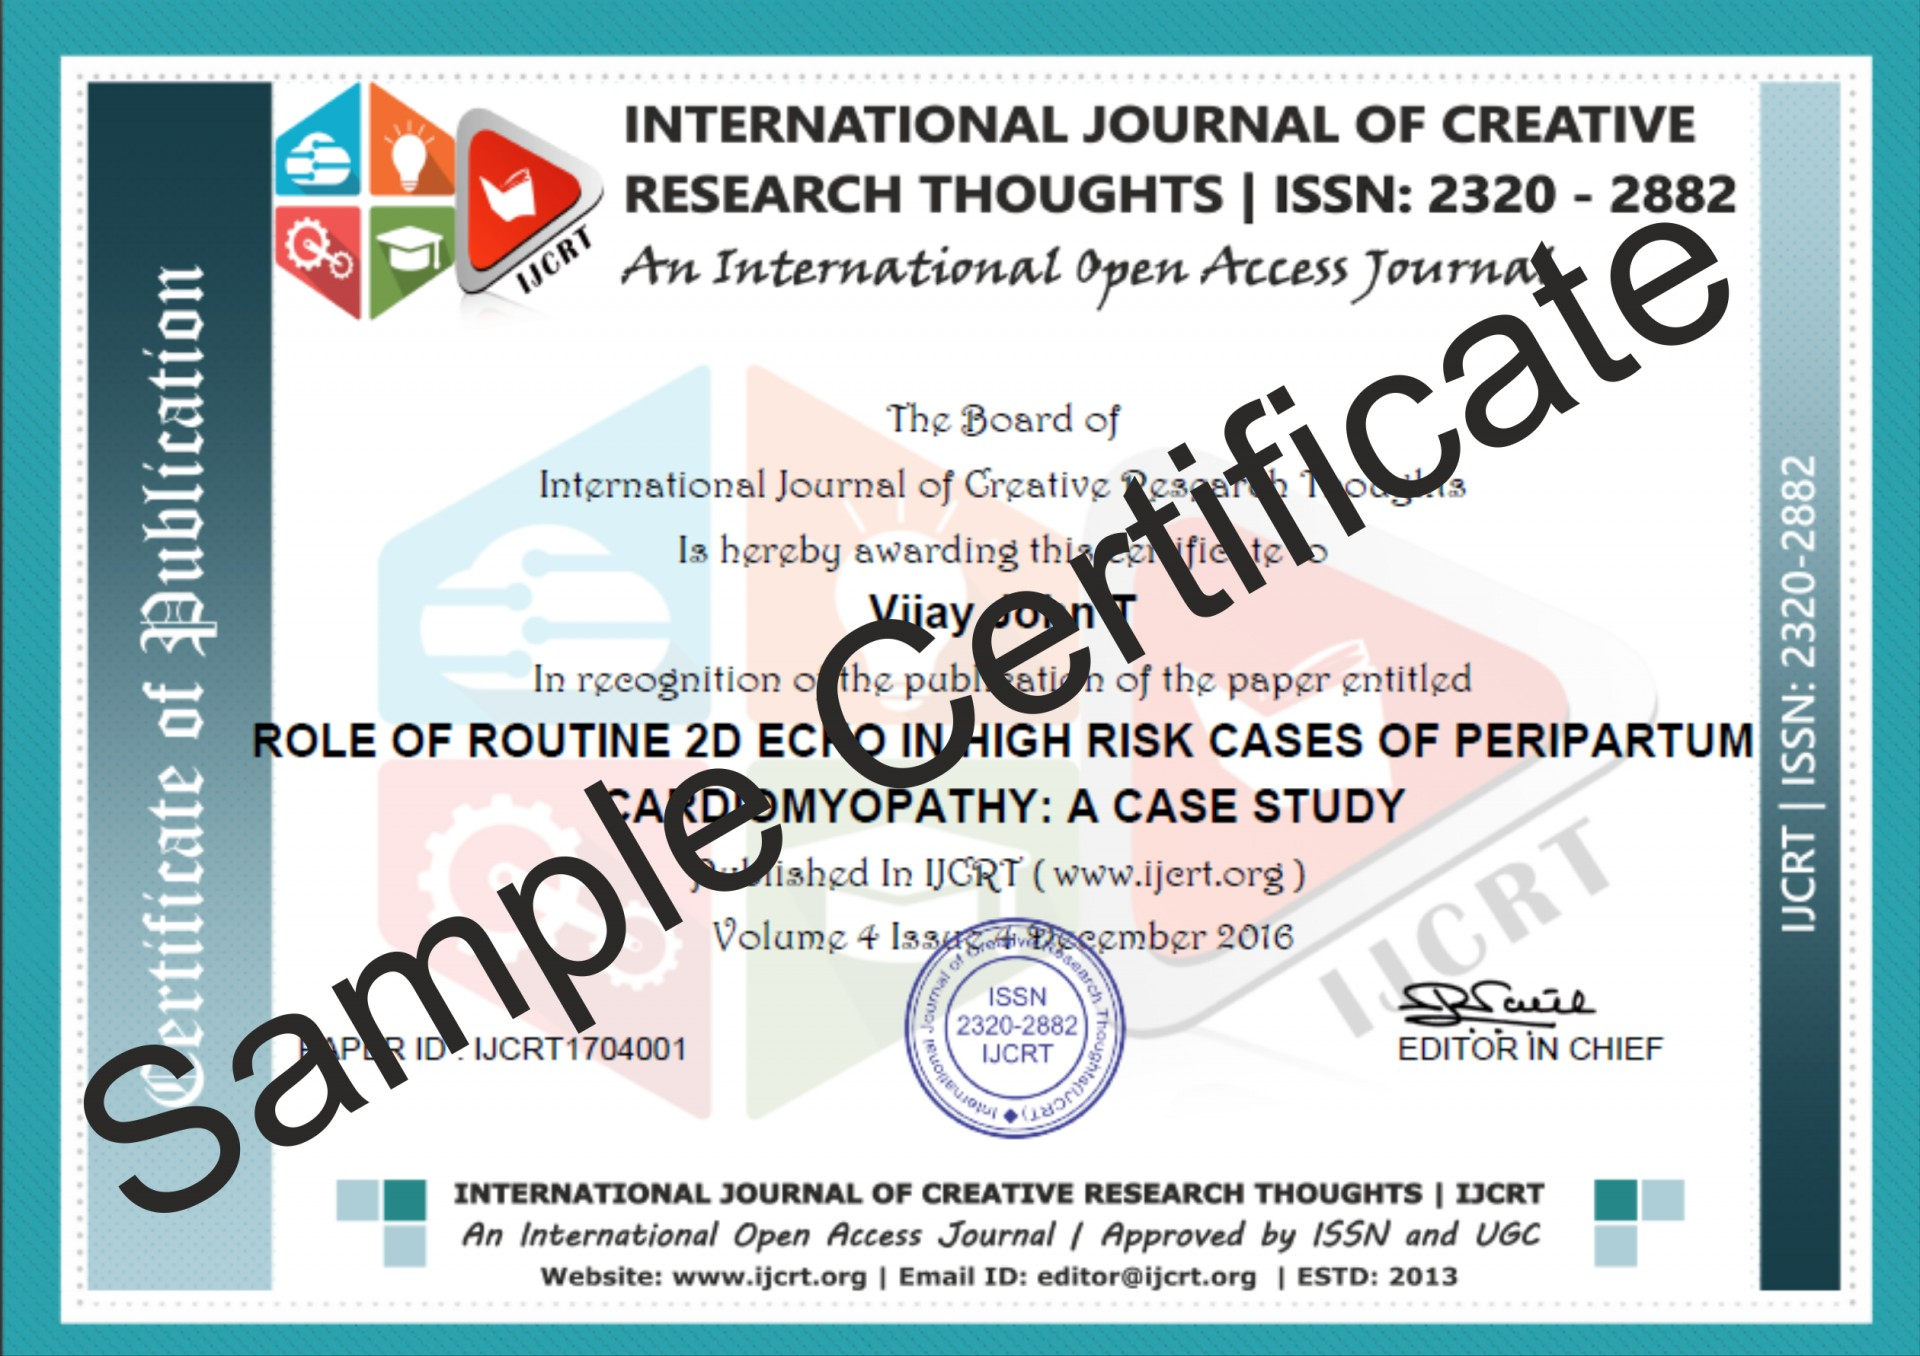 018 Research Paper Sample Certificate Best Journals To Publish Stunning Papers In Computer Science List Of 1920